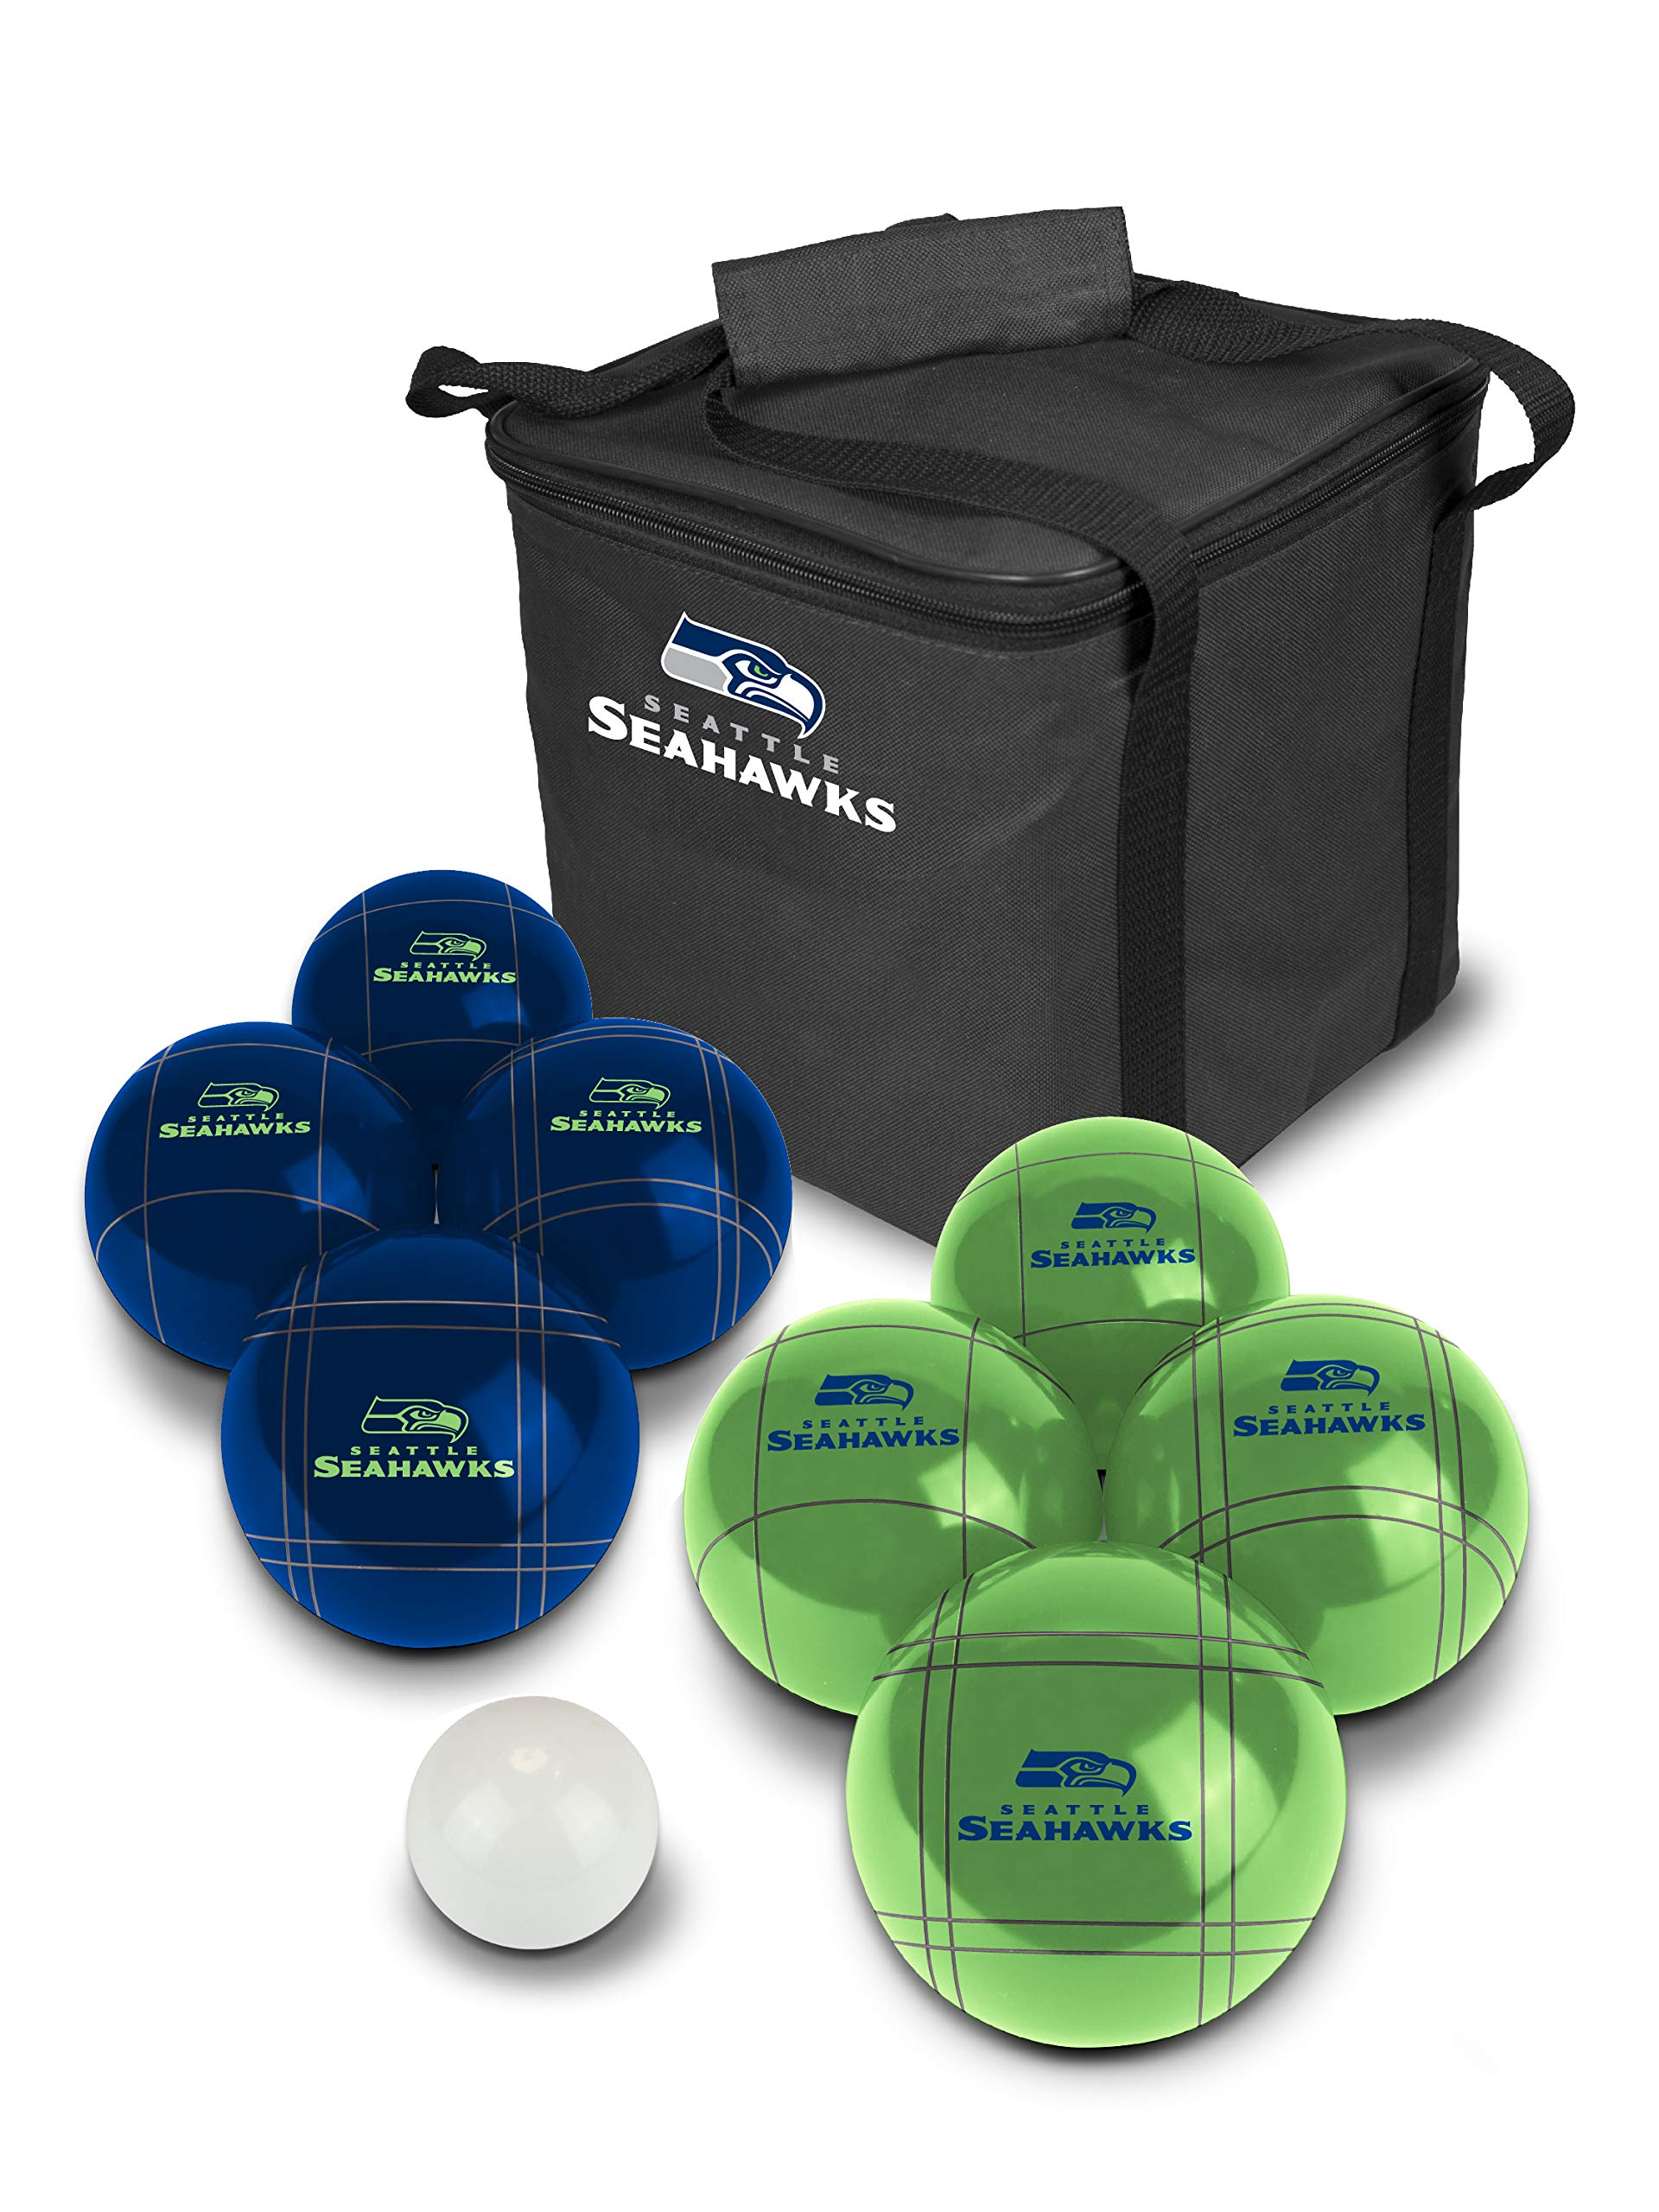 PROLINE NFL Seattle Seahawks Bocce Ball Set by PROLINE (Image #1)